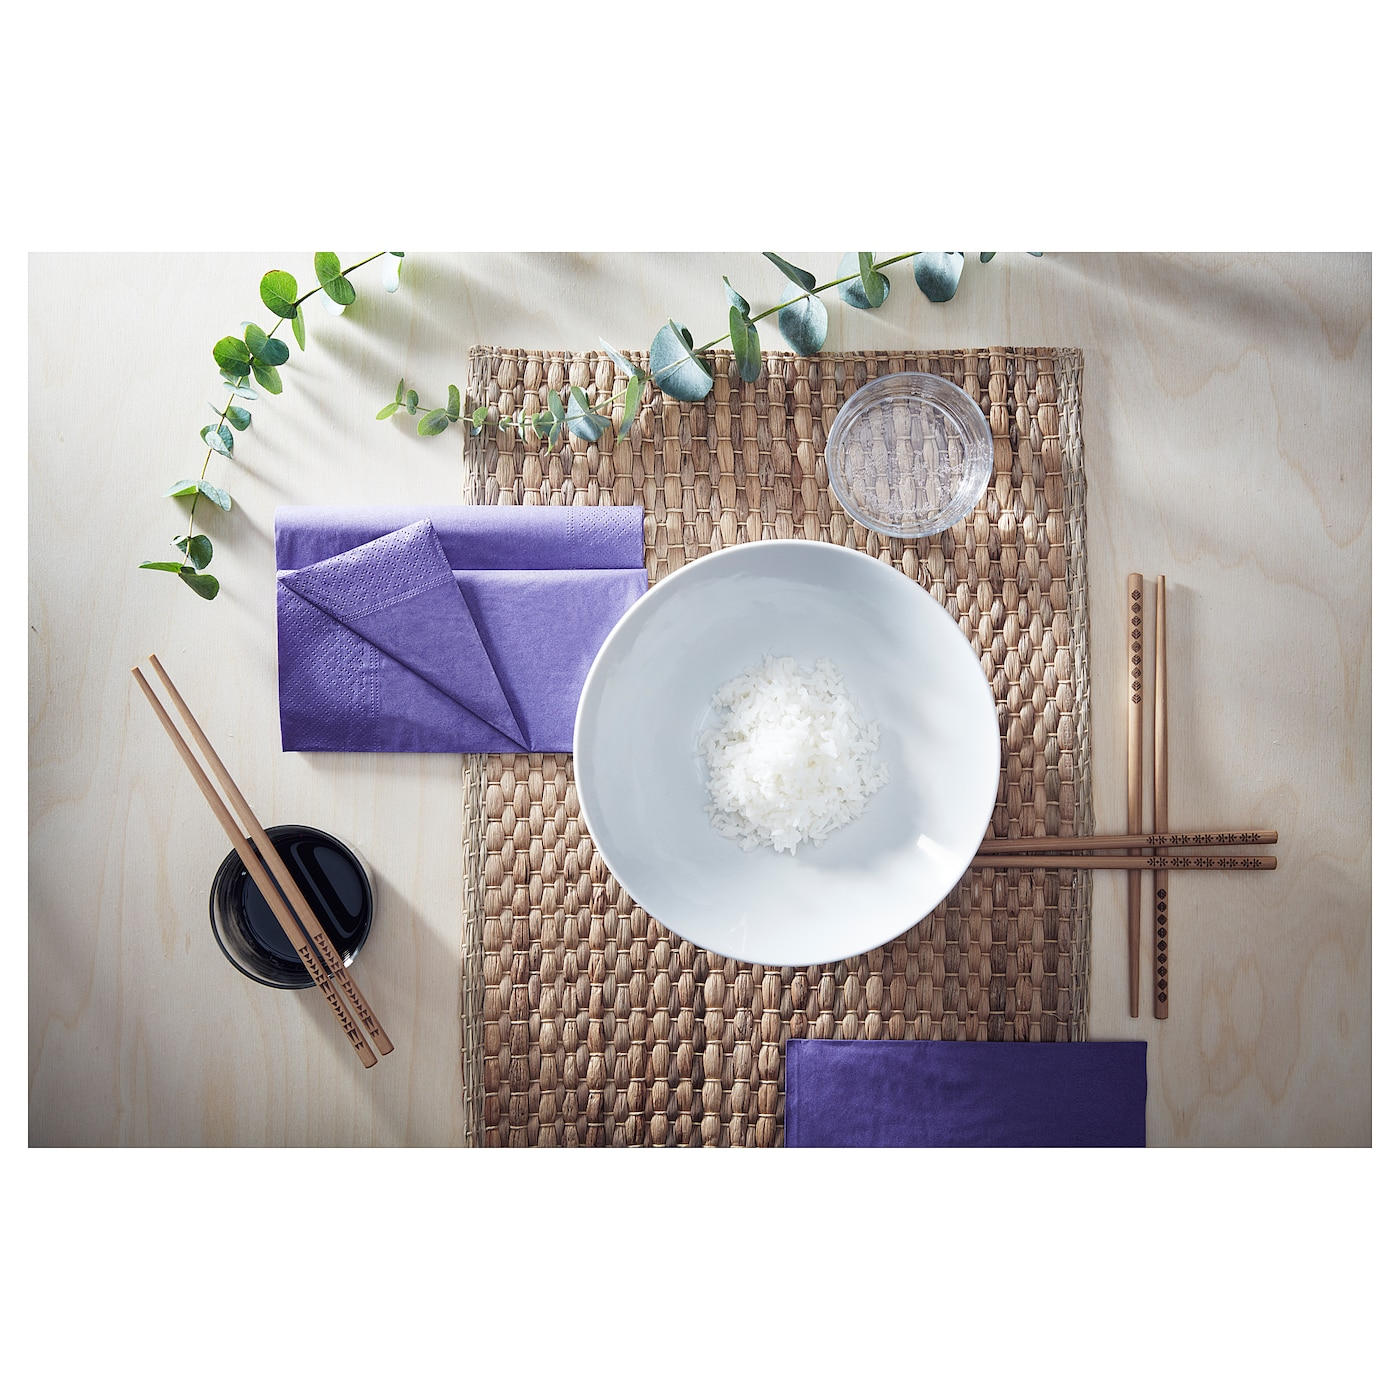 IKEA UNDERLAG place mat Protects the table top surface and reduces noise from plates and cutlery.